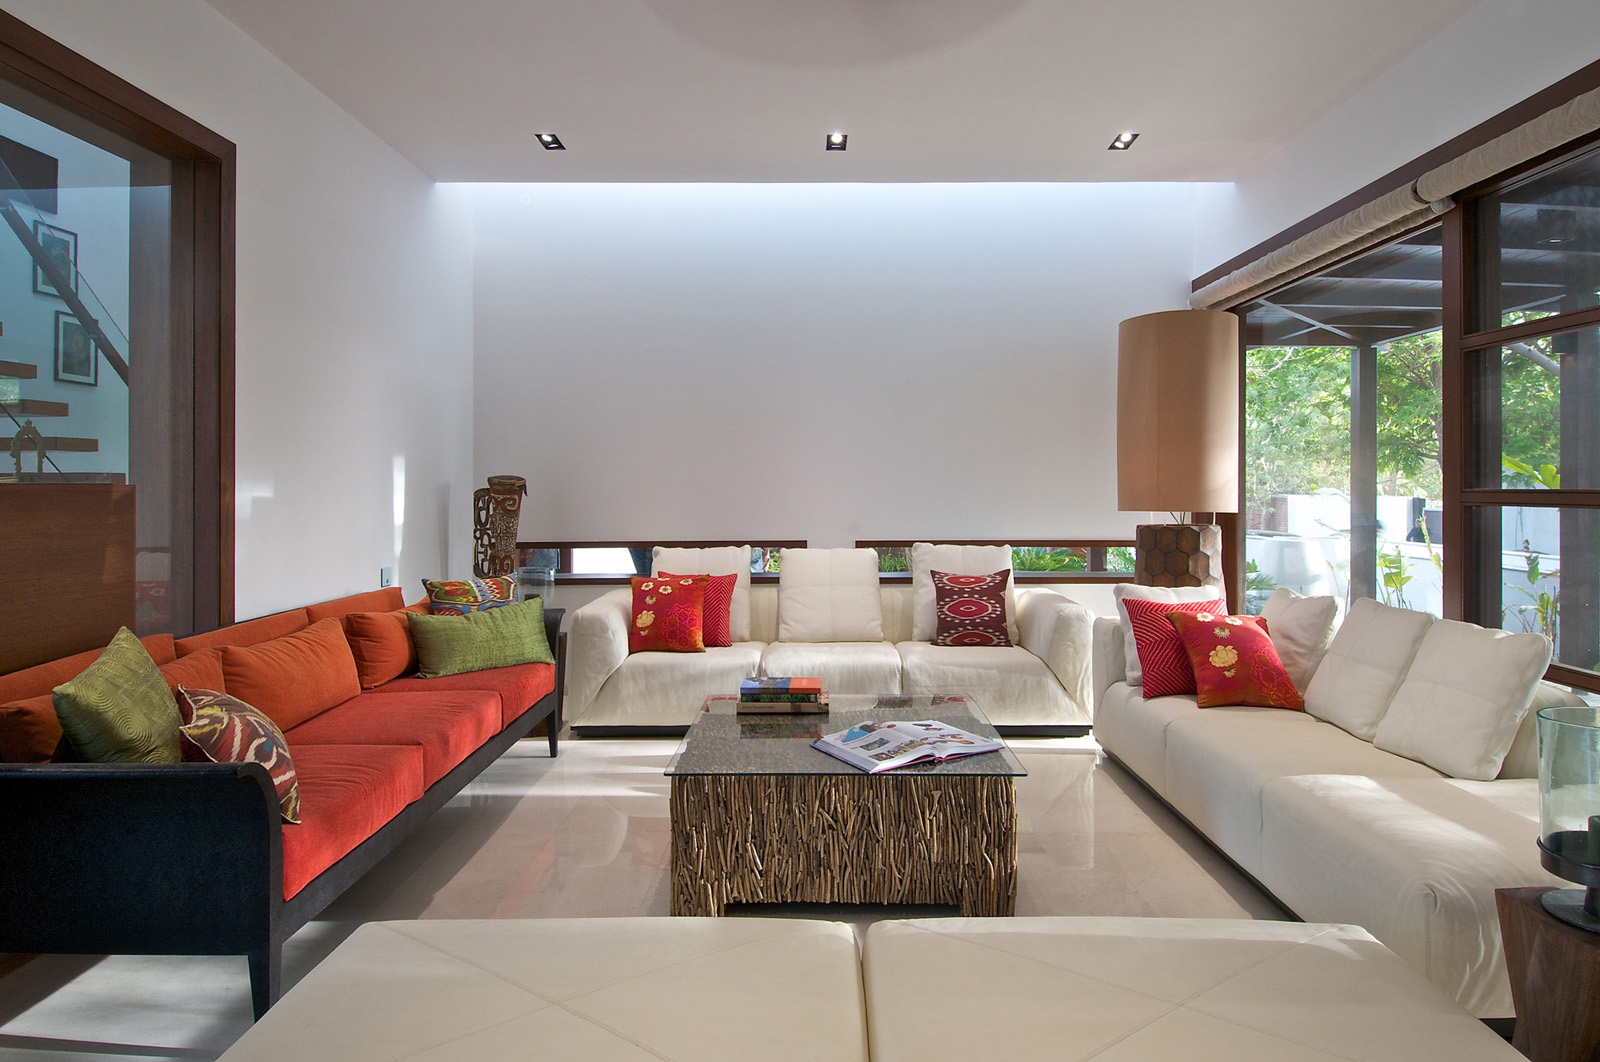 Home Design: Timeless Contemporary House In India With Courtyard Zen